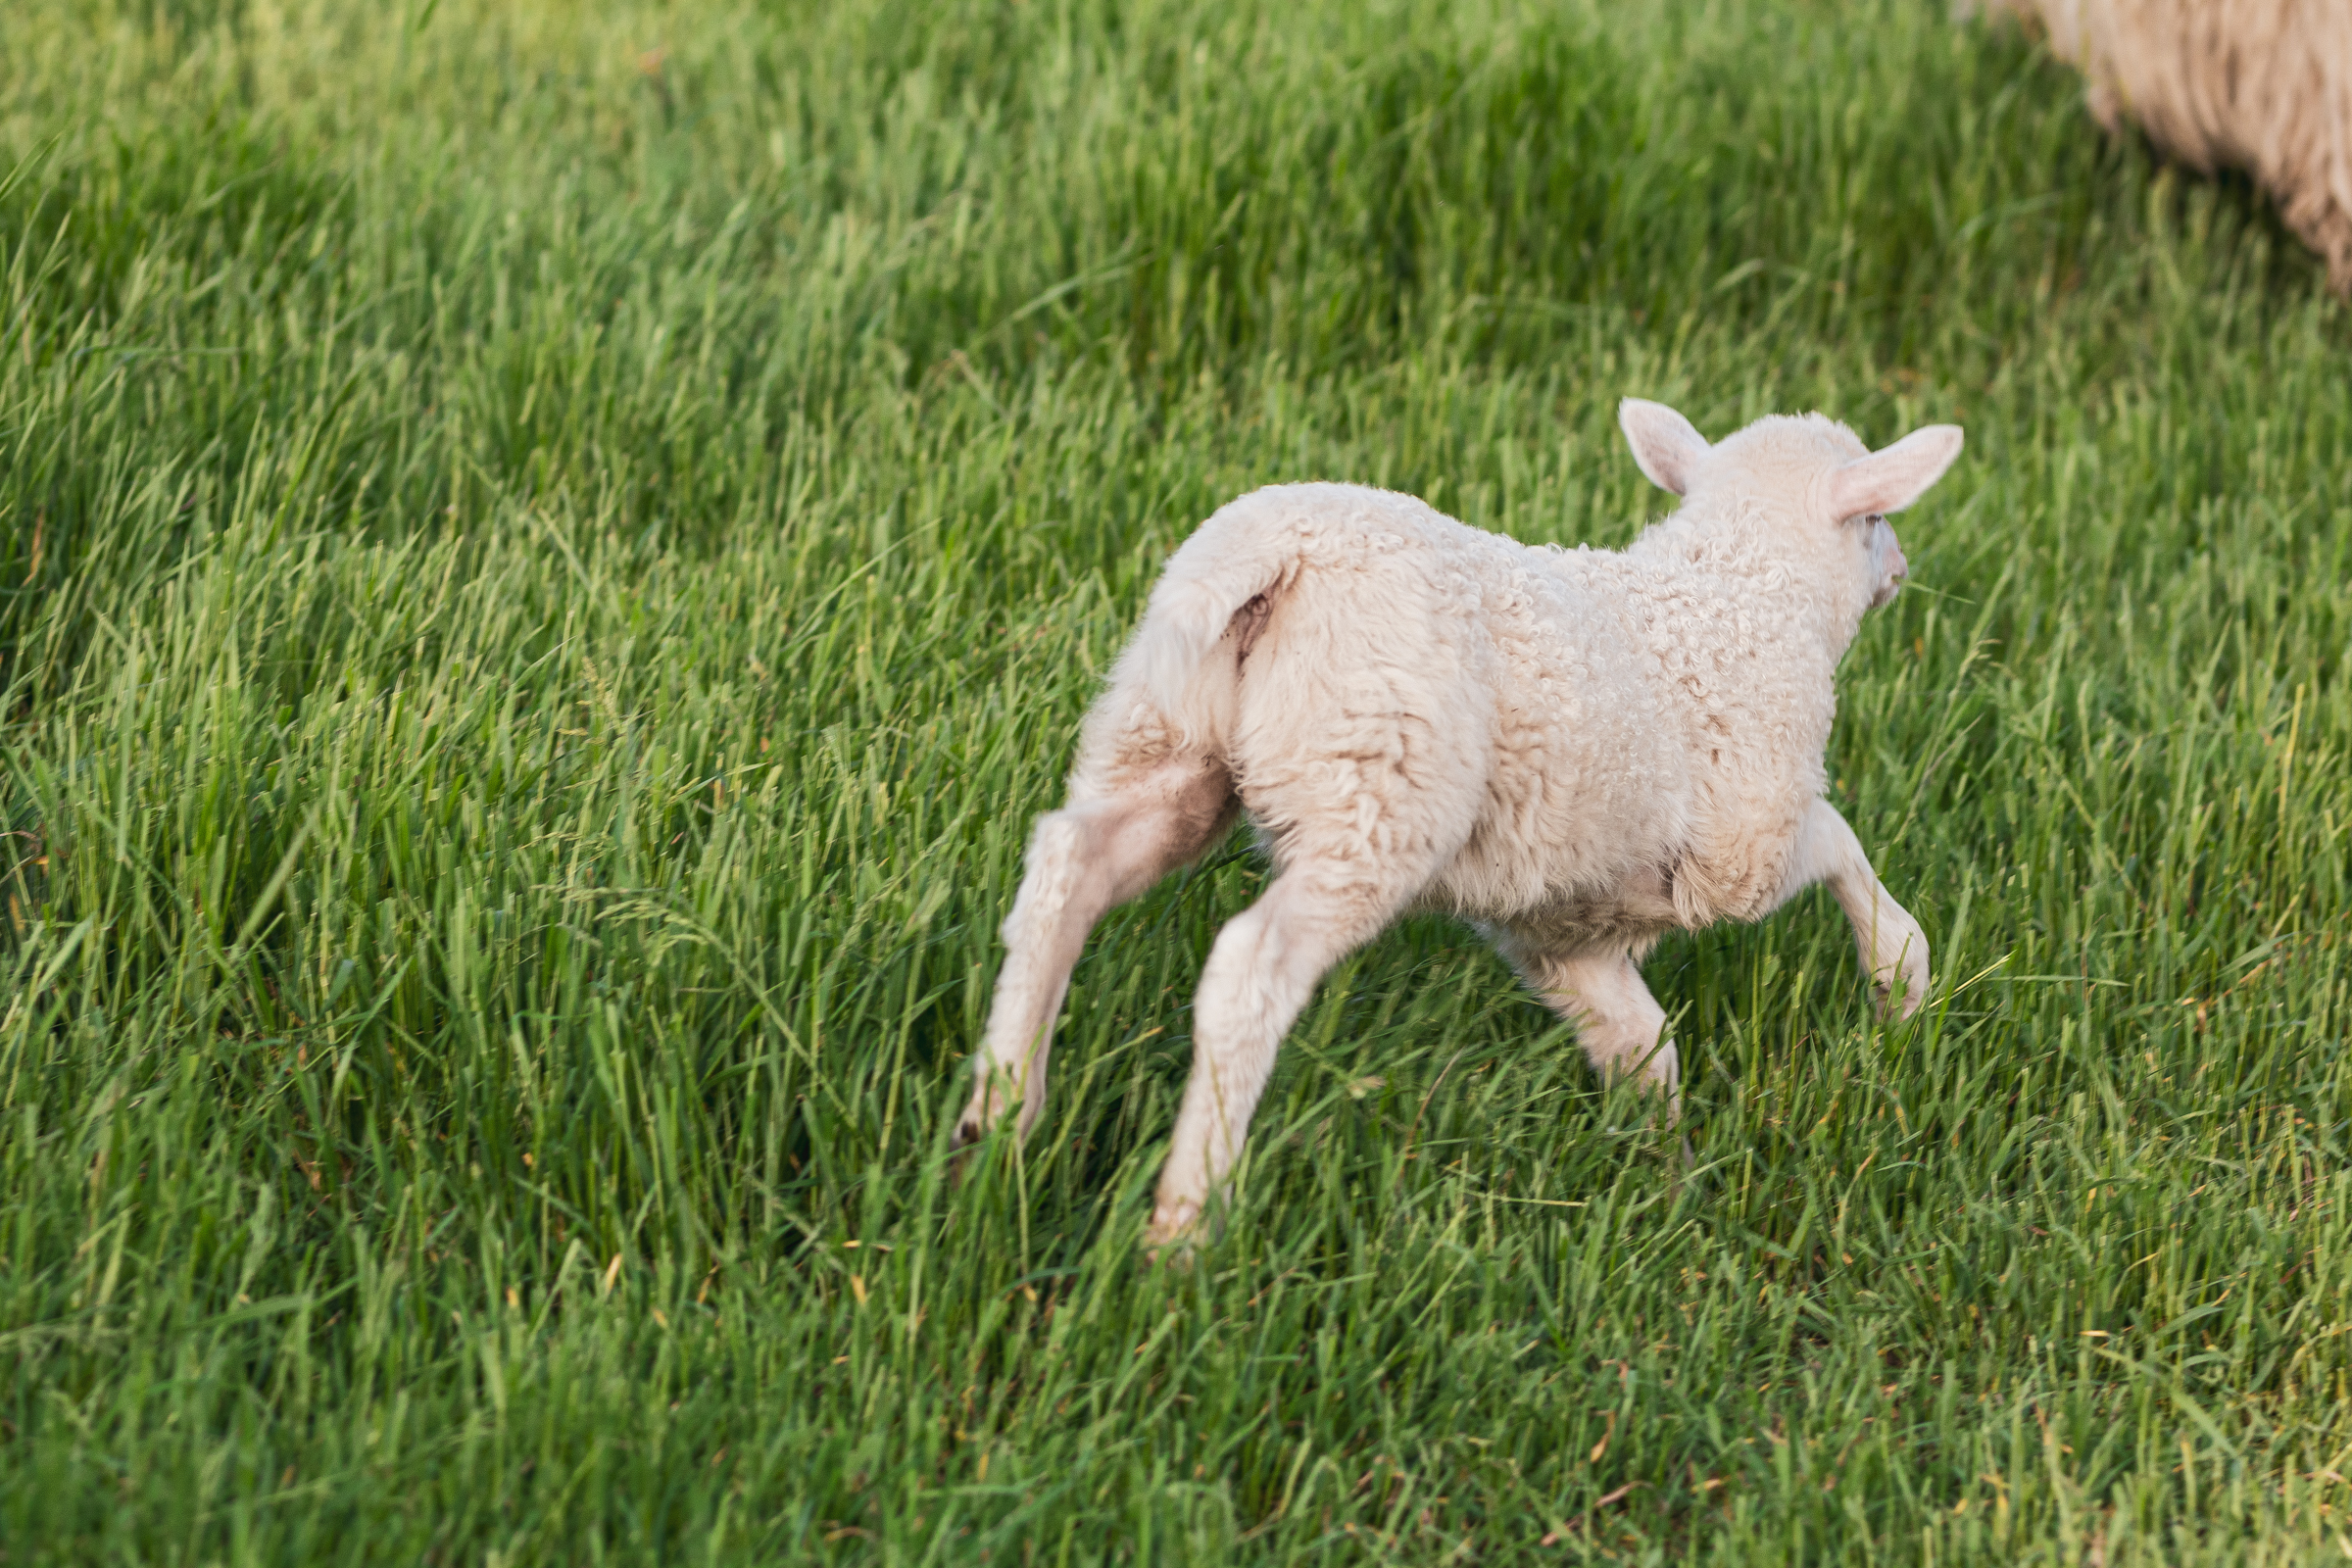 A young sheep on a green field running away from the camera and out of the frame.